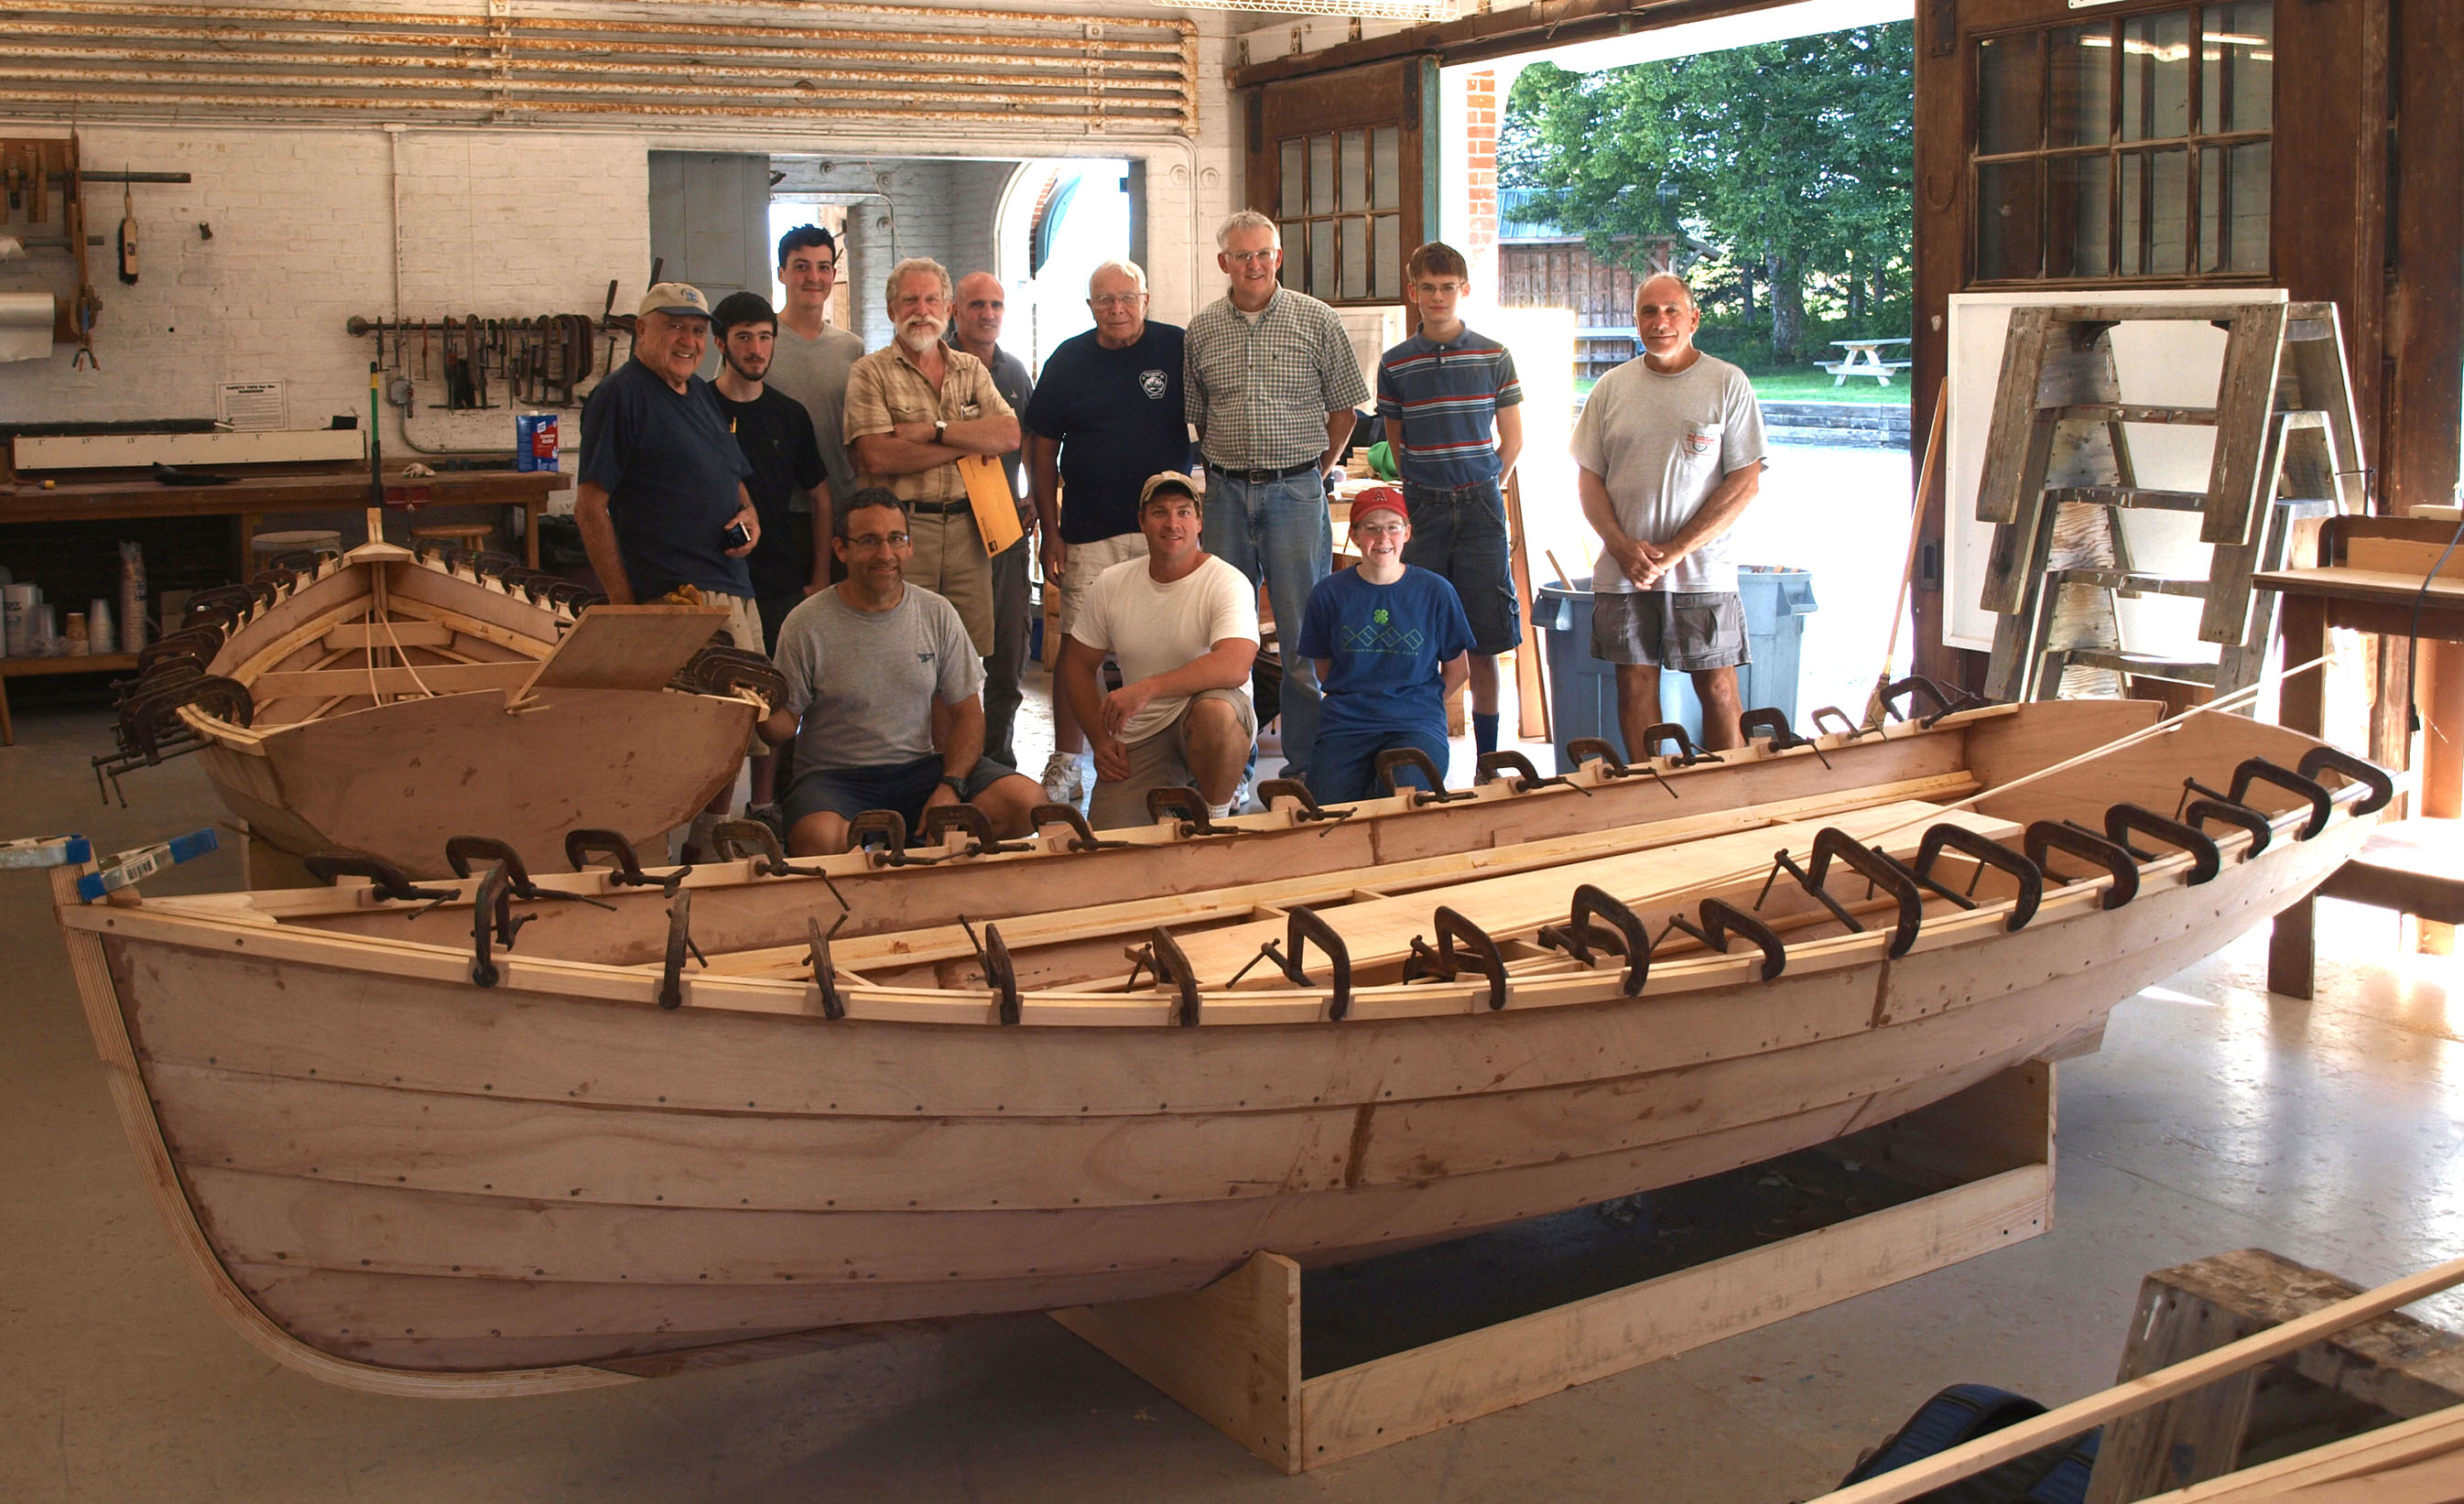 1000+ ideas about Wooden Boat Kits on Pinterest | Boat Plans, Boat Kits and Wooden Boat Plans